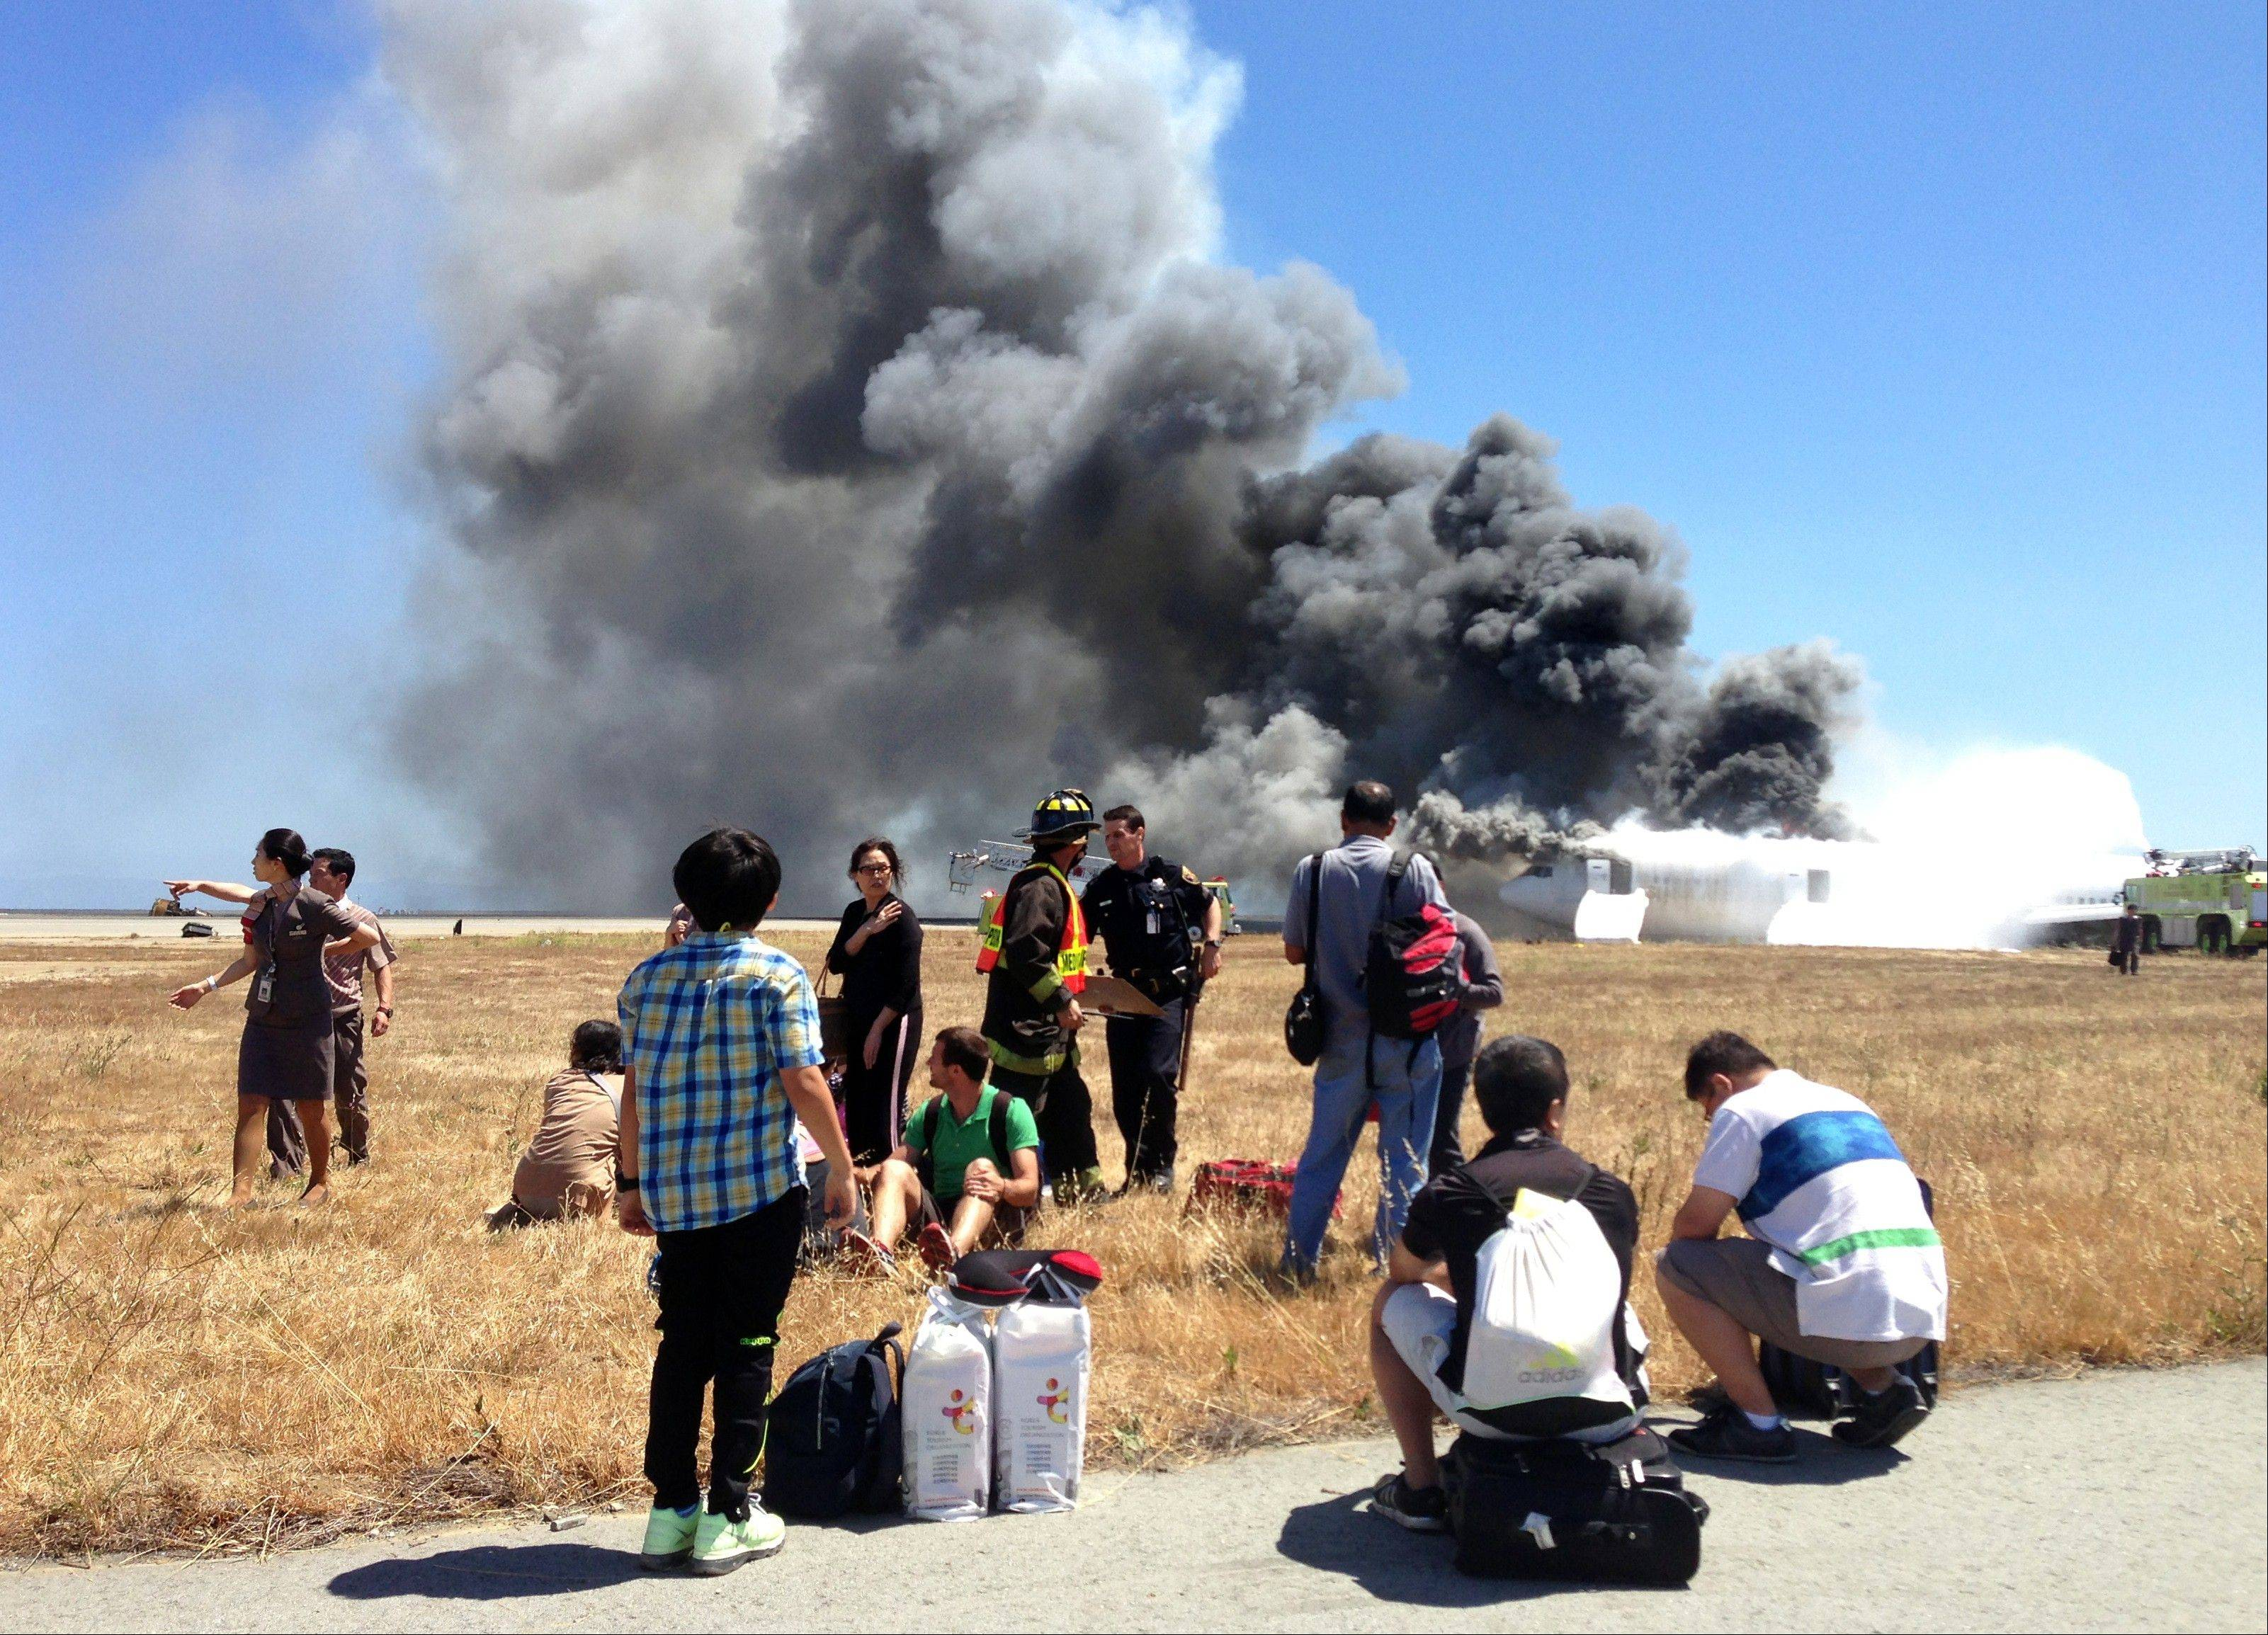 Passengers from Asiana Airlines flight 214, many with their luggage, are seen on the tarmac just moments after the plane crashed at the San Francisco International Airport in San Francisco on July 6, 2013.